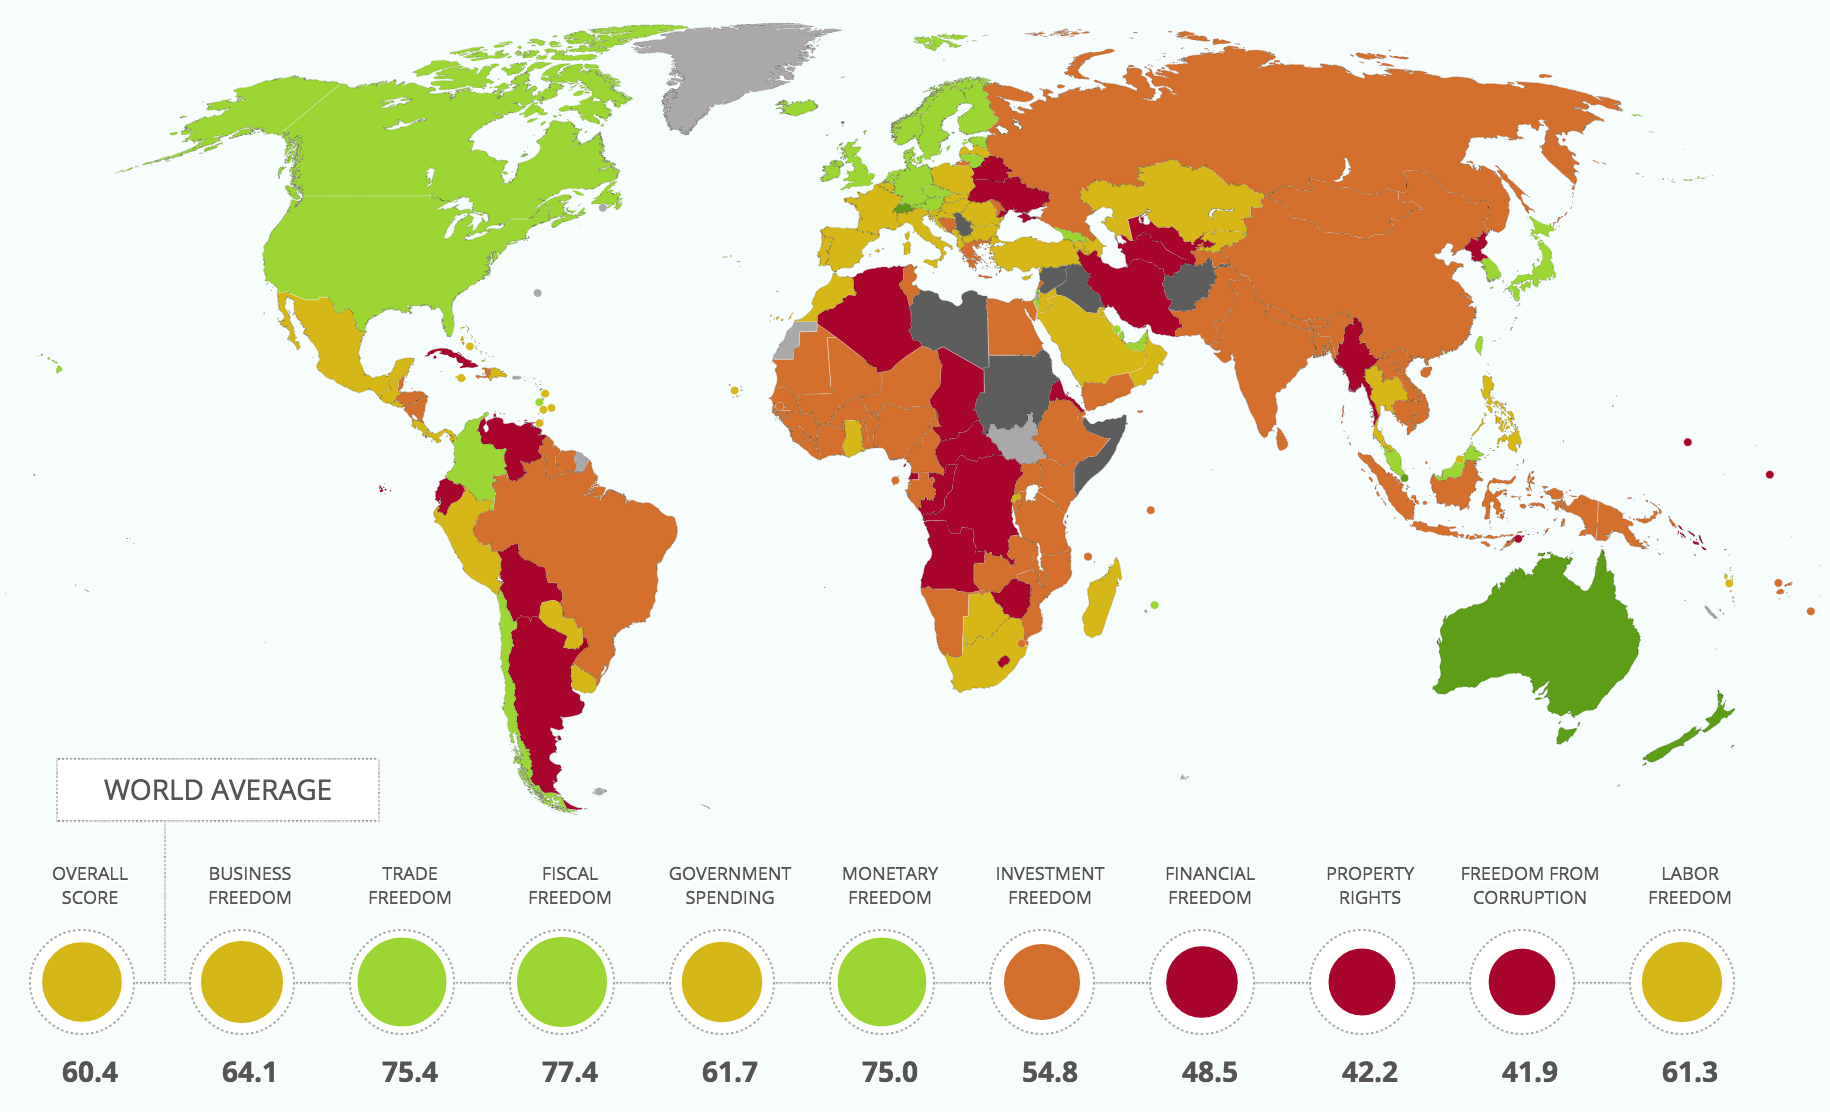 2015_World_Economic_Freedom_Levels__Heat_Map_for_Continents_and_Countries